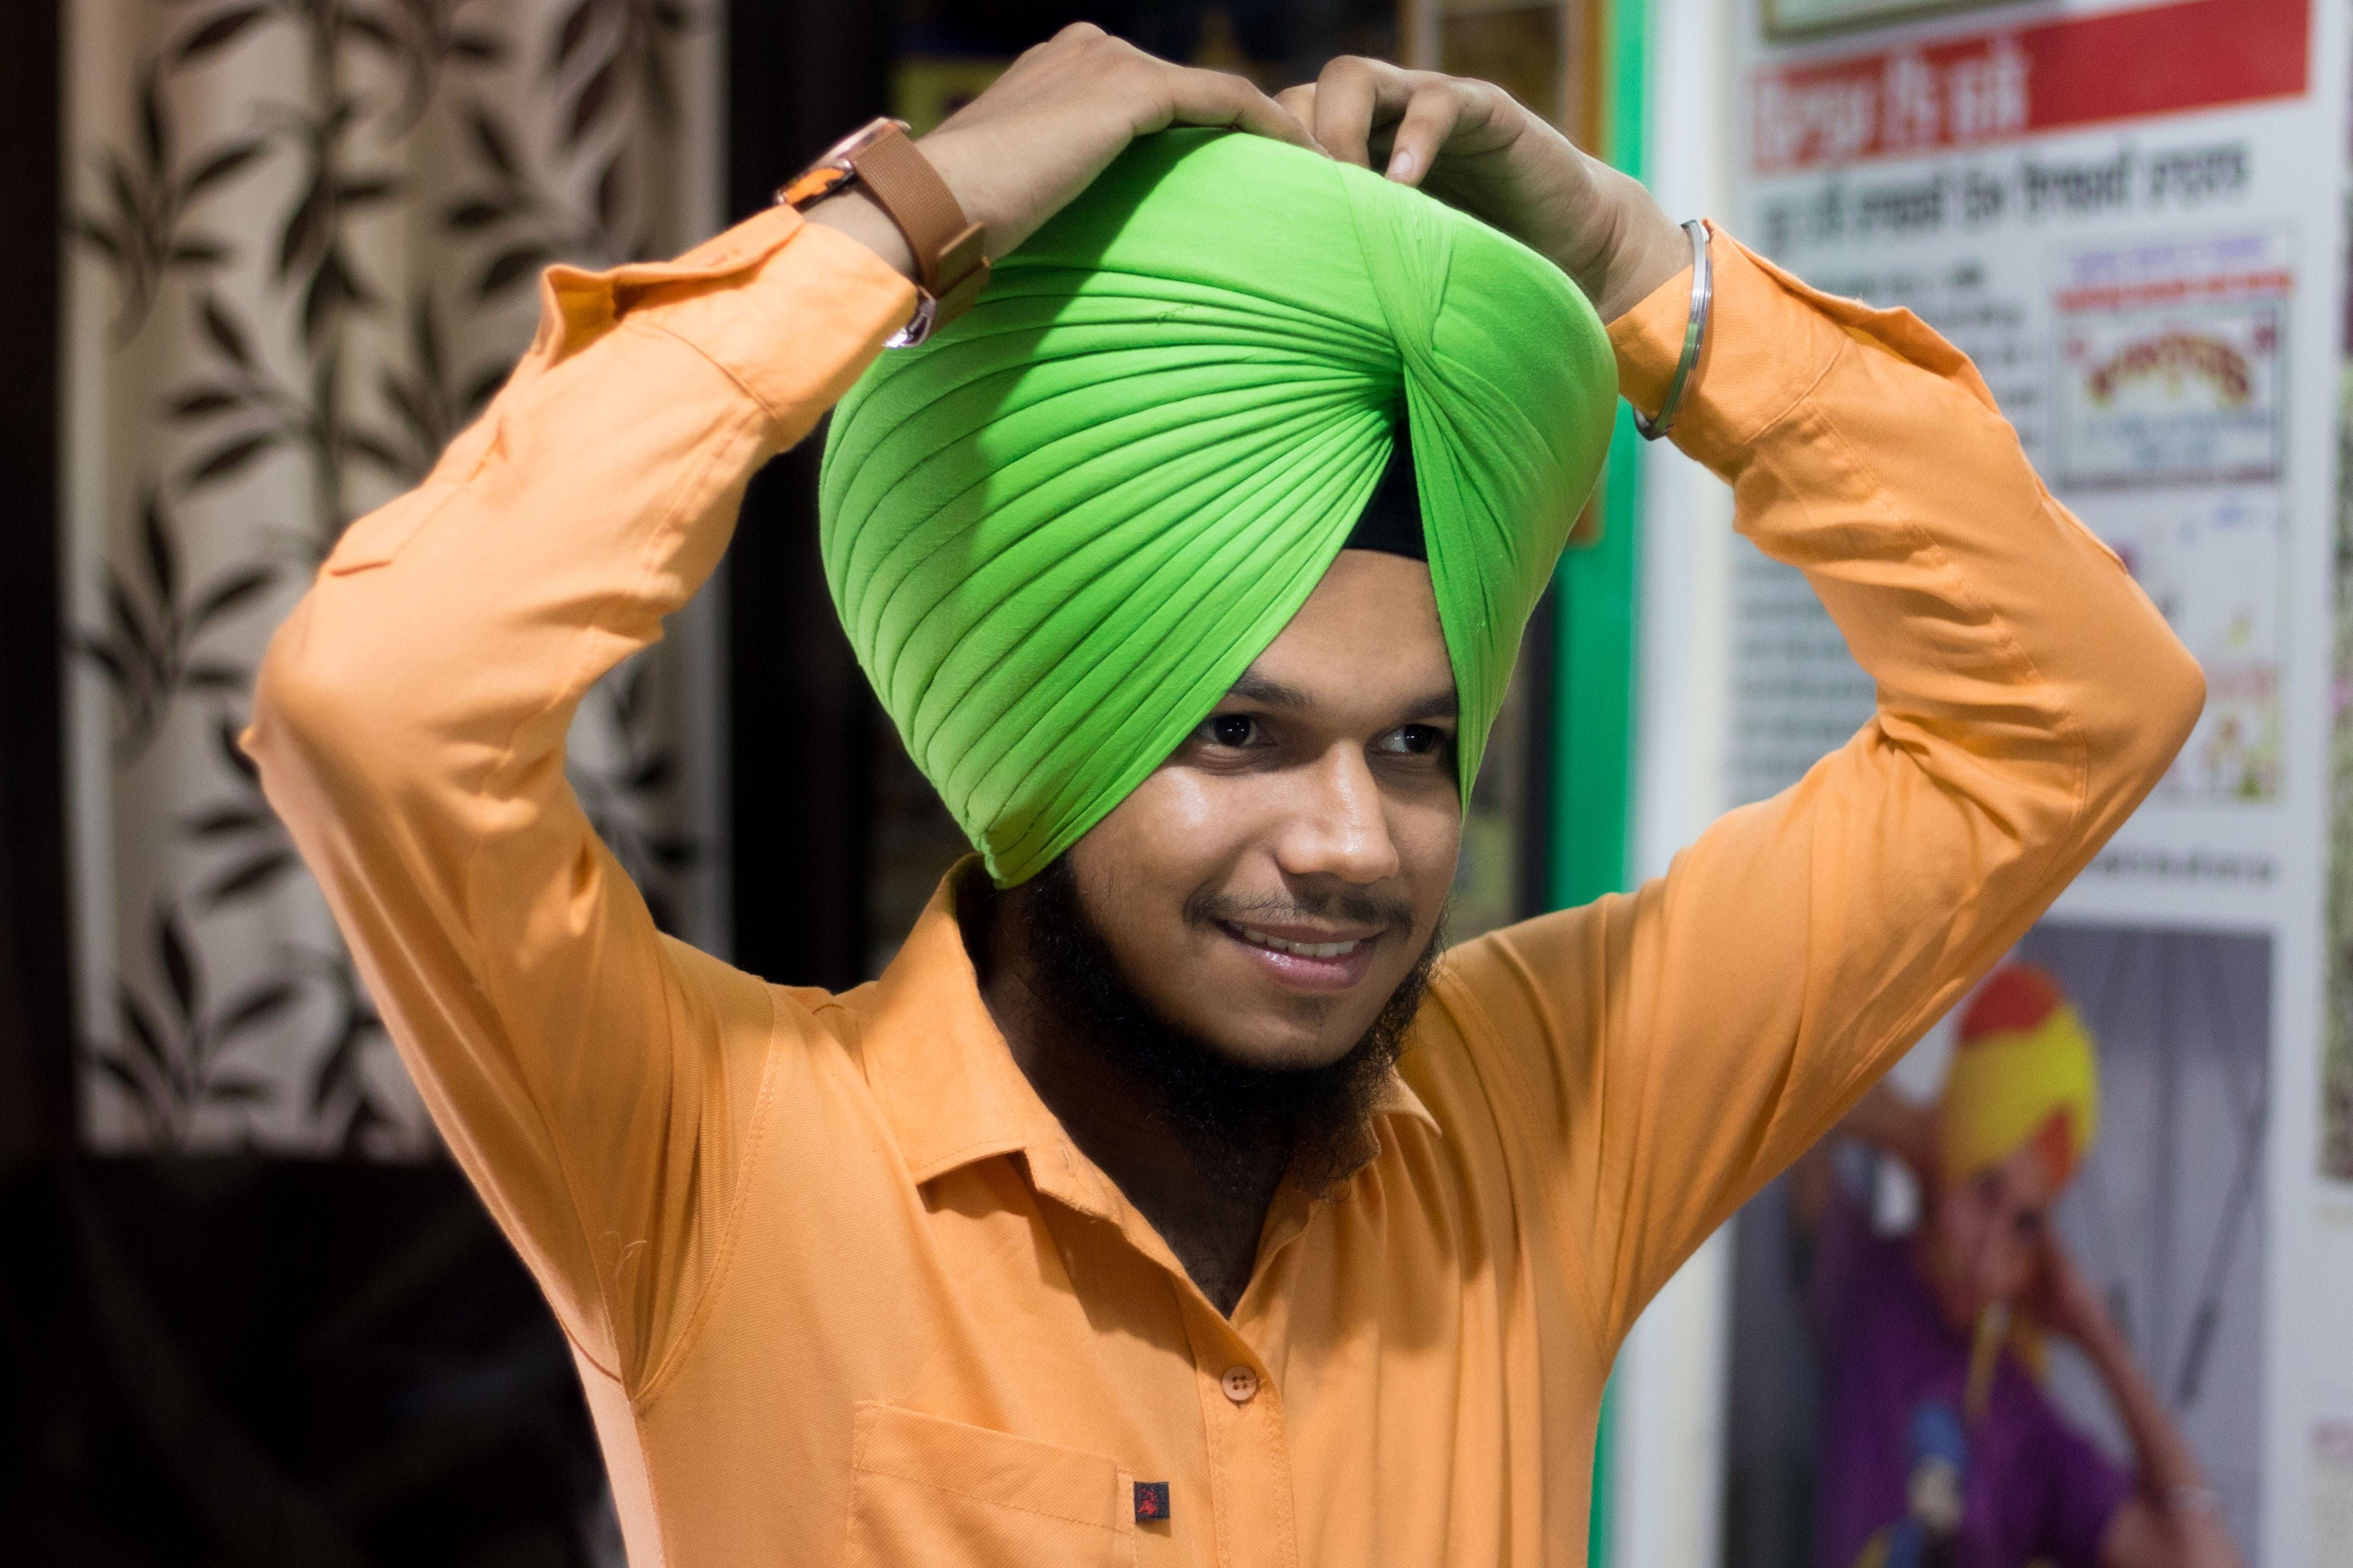 This Is A Patiala Shahi Turban Turban 711036 Hd Wallpaper Backgrounds Download